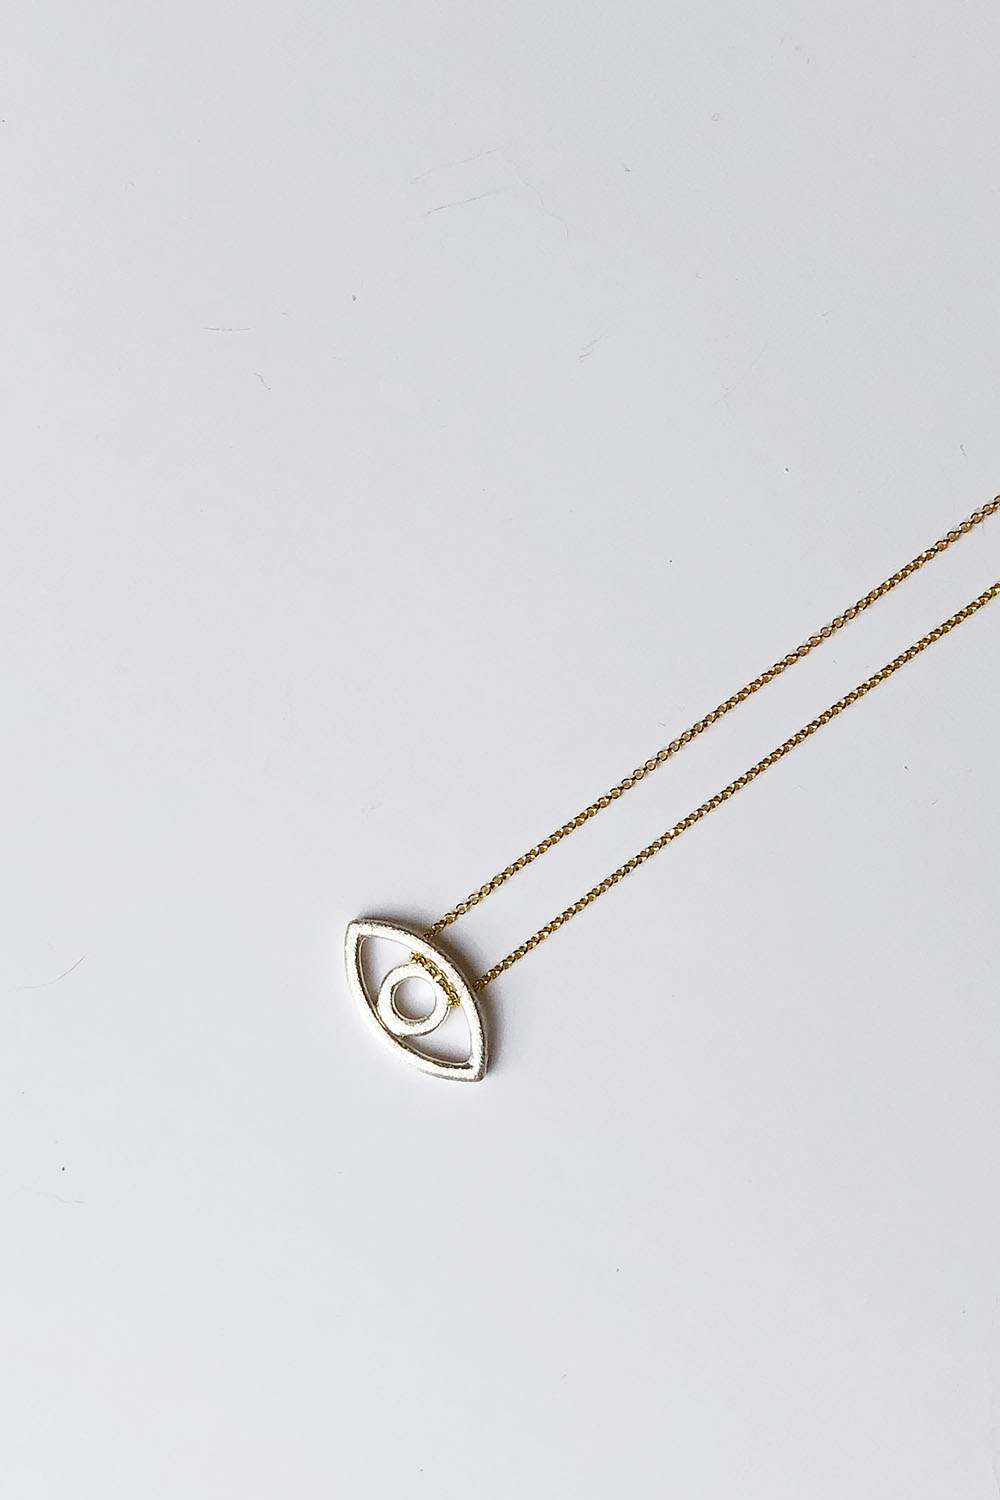 Gold and silver plated eye necklace